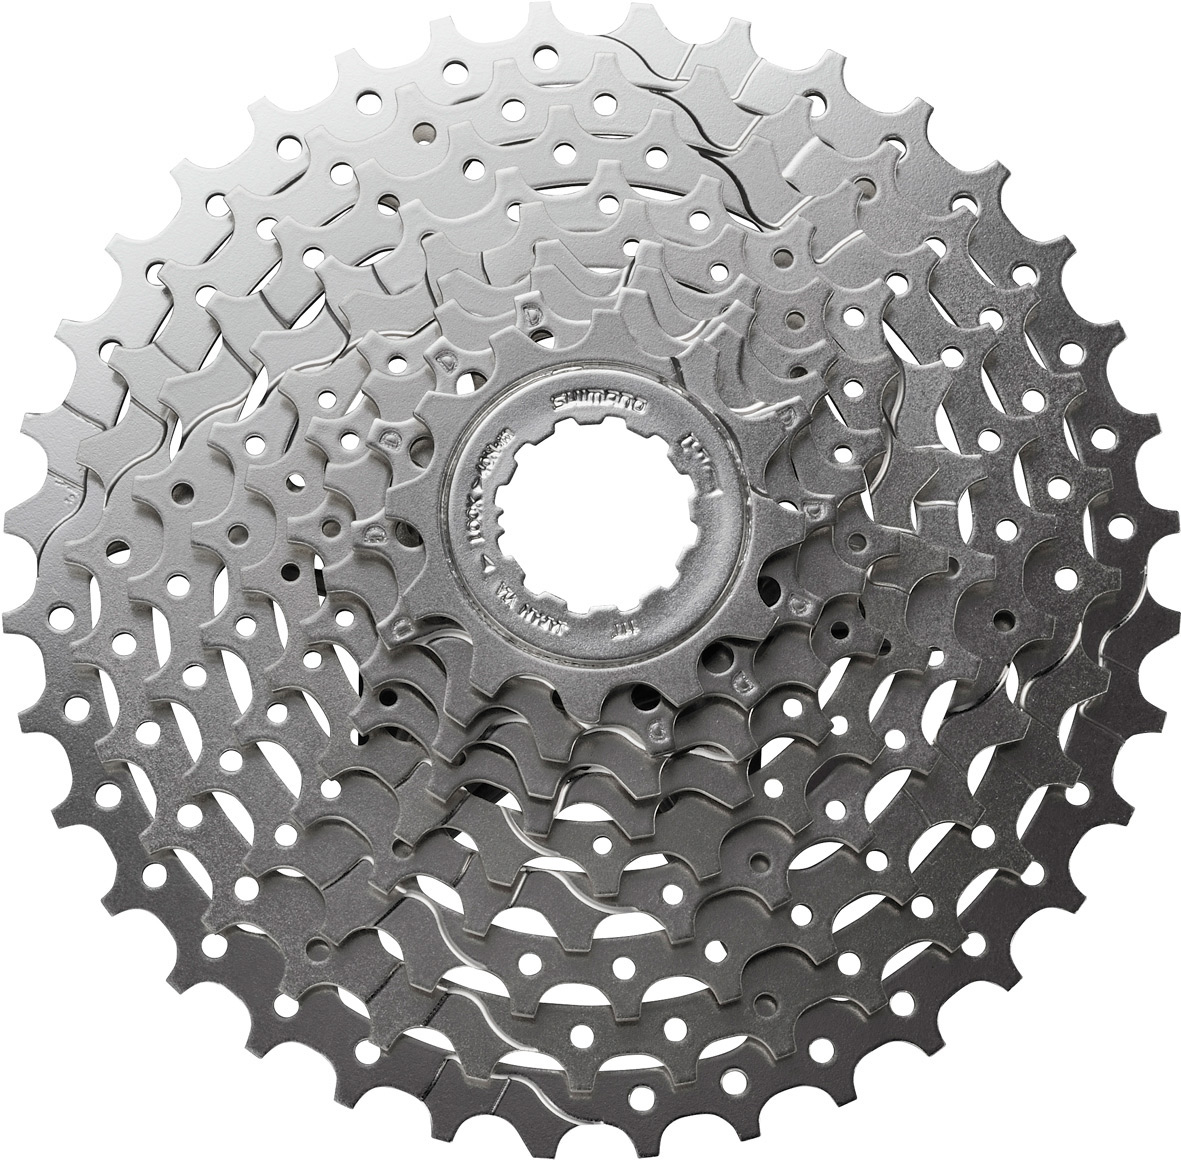 CS-HG400 Alivio 9-speed cassette 11-25